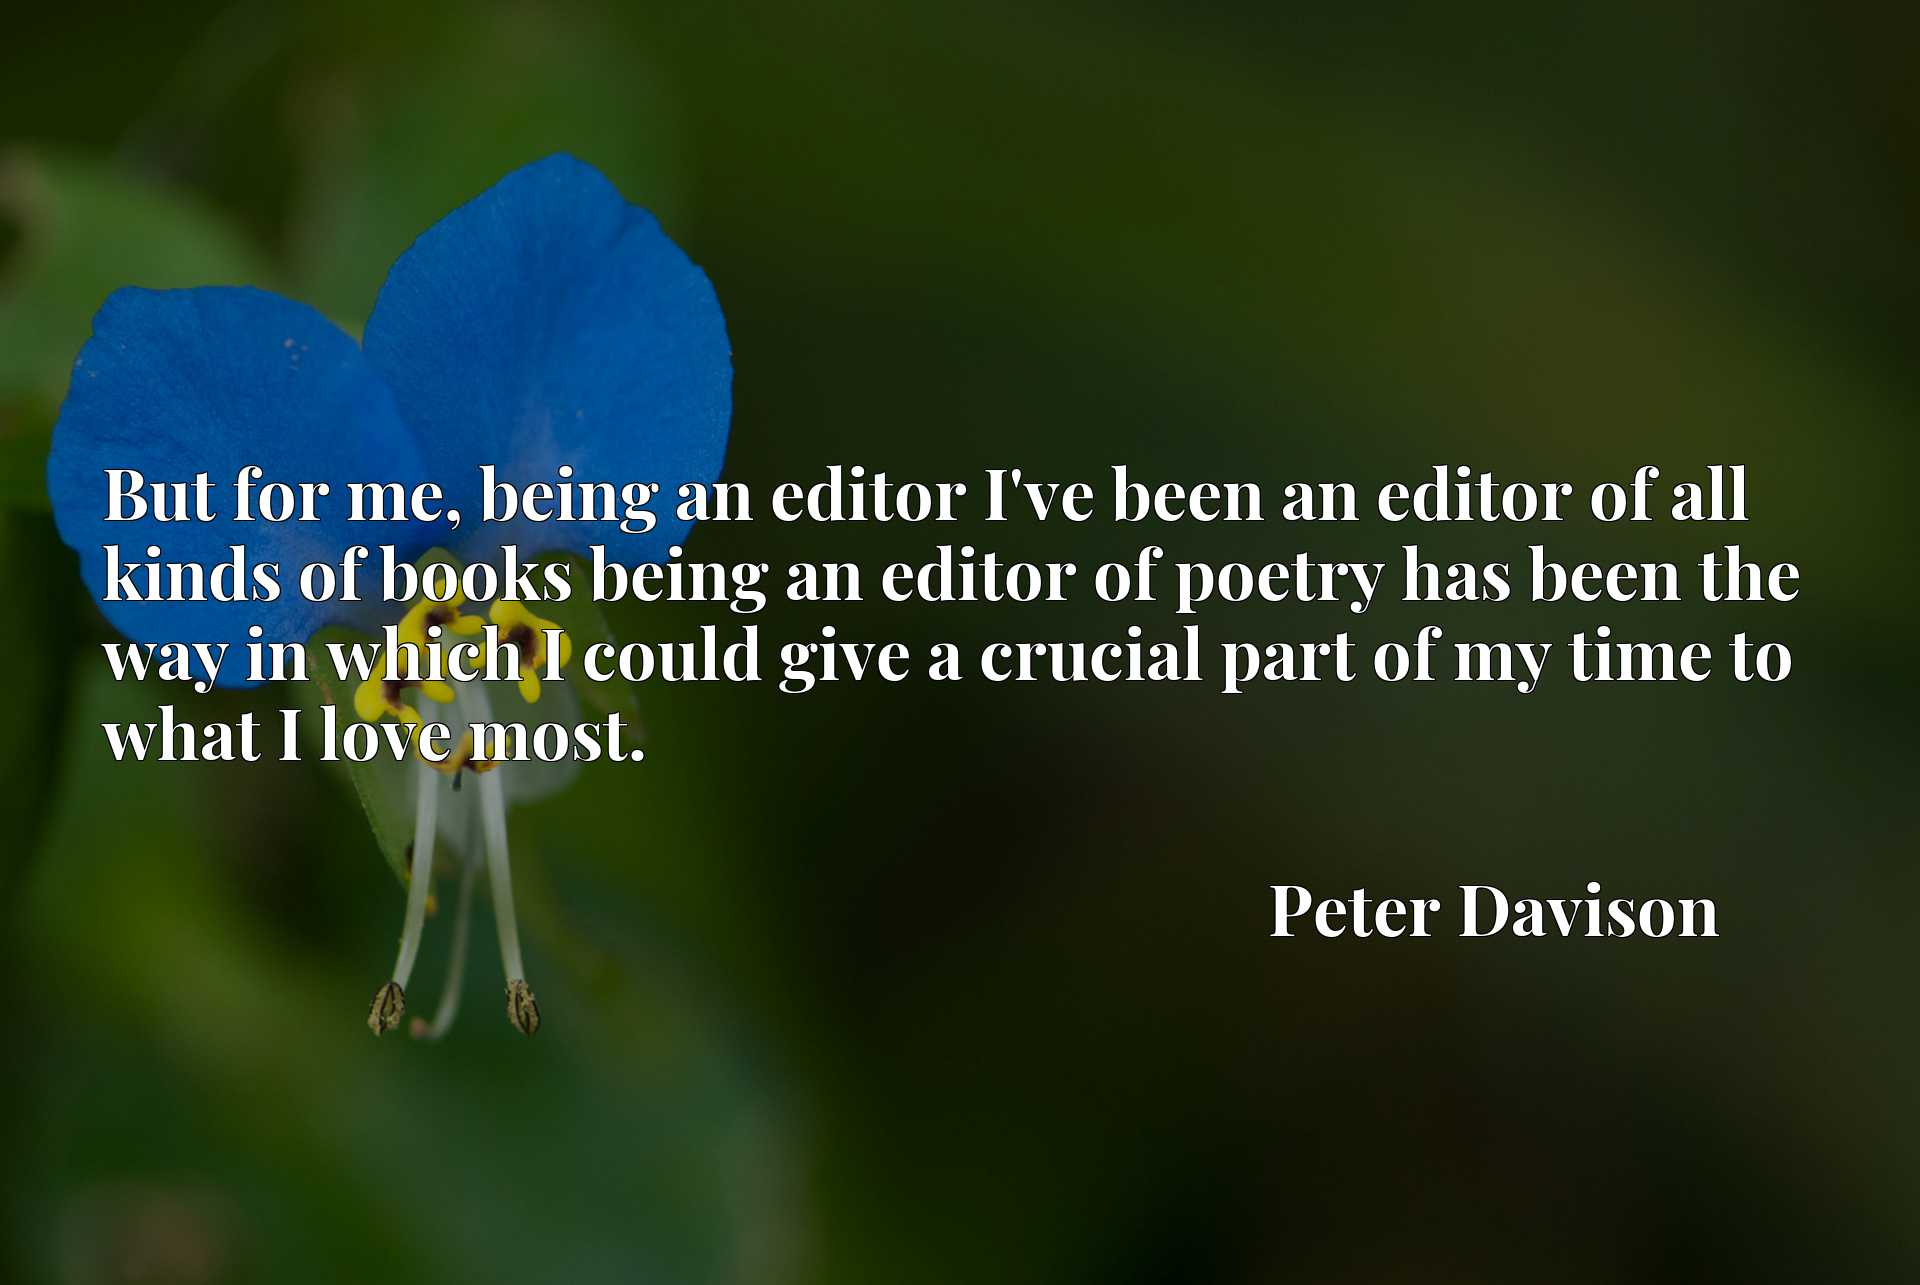 But for me, being an editor I've been an editor of all kinds of books being an editor of poetry has been the way in which I could give a crucial part of my time to what I love most.